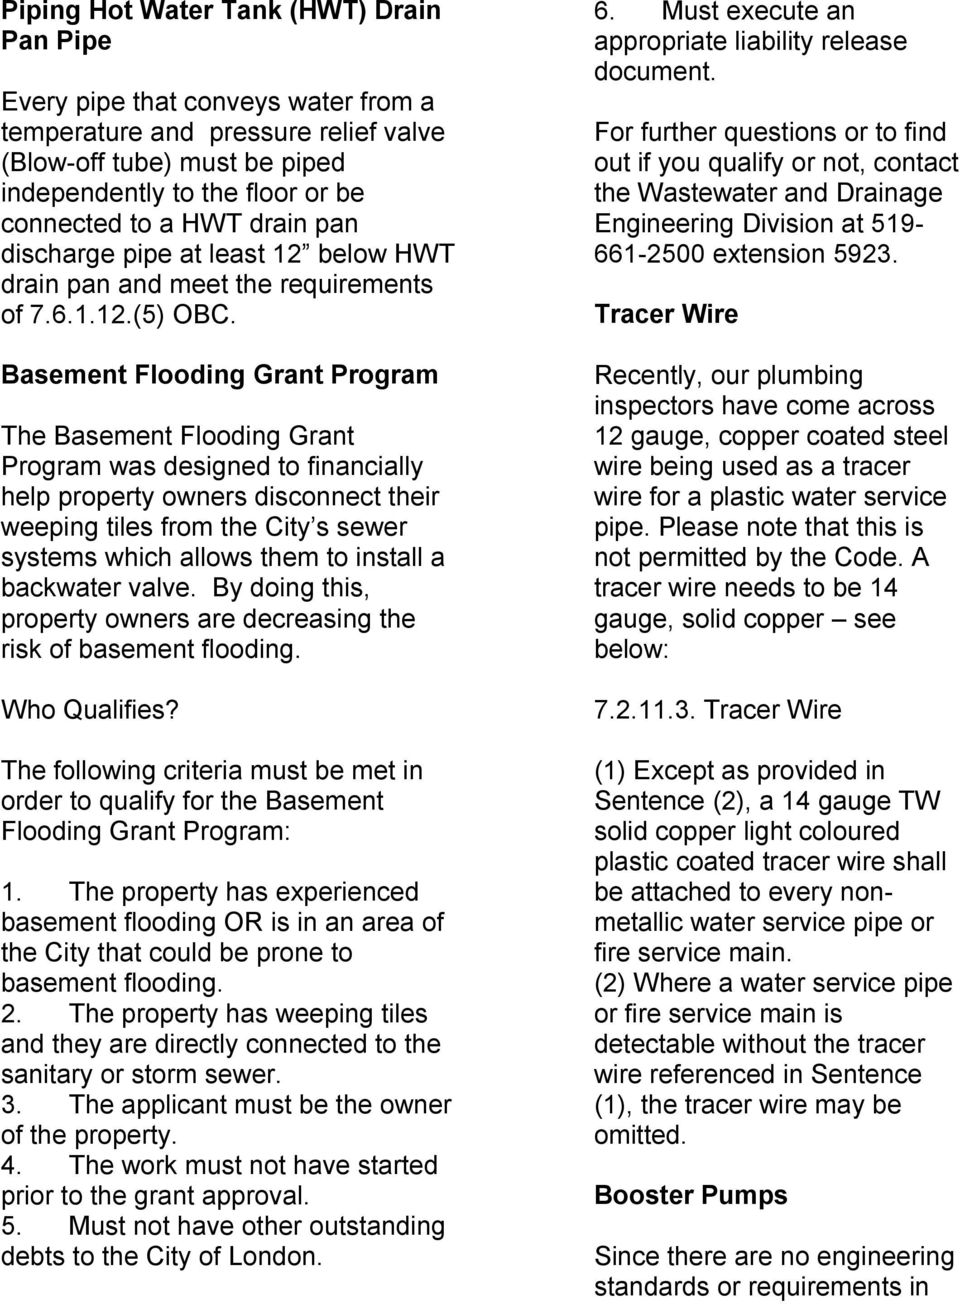 Basement Flooding Grant Program The Basement Flooding Grant Program was designed to financially help property owners disconnect their weeping tiles from the City s sewer systems which allows them to